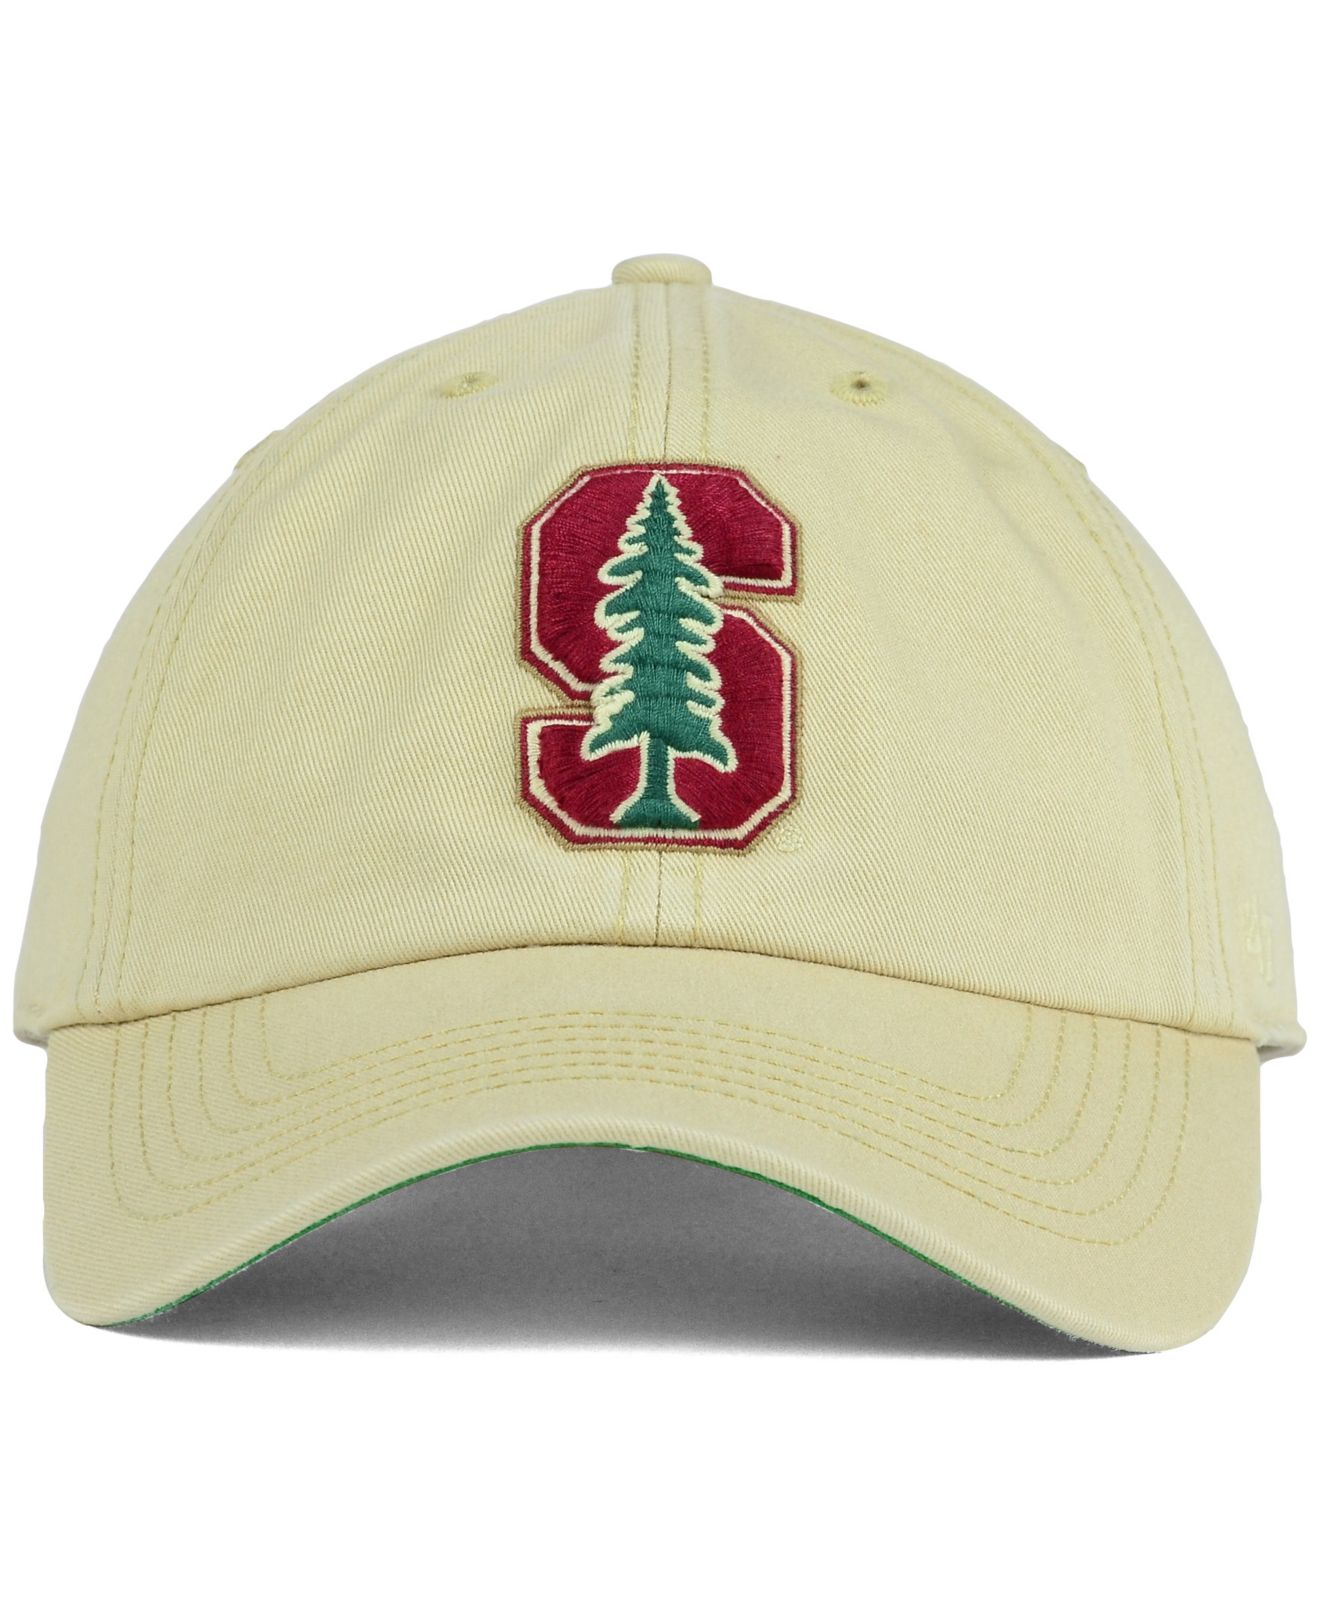 7c1d9bf9a61 Lyst - 47 Brand Stanford Cardinal Sahara Lawrence Cap in Natural for Men